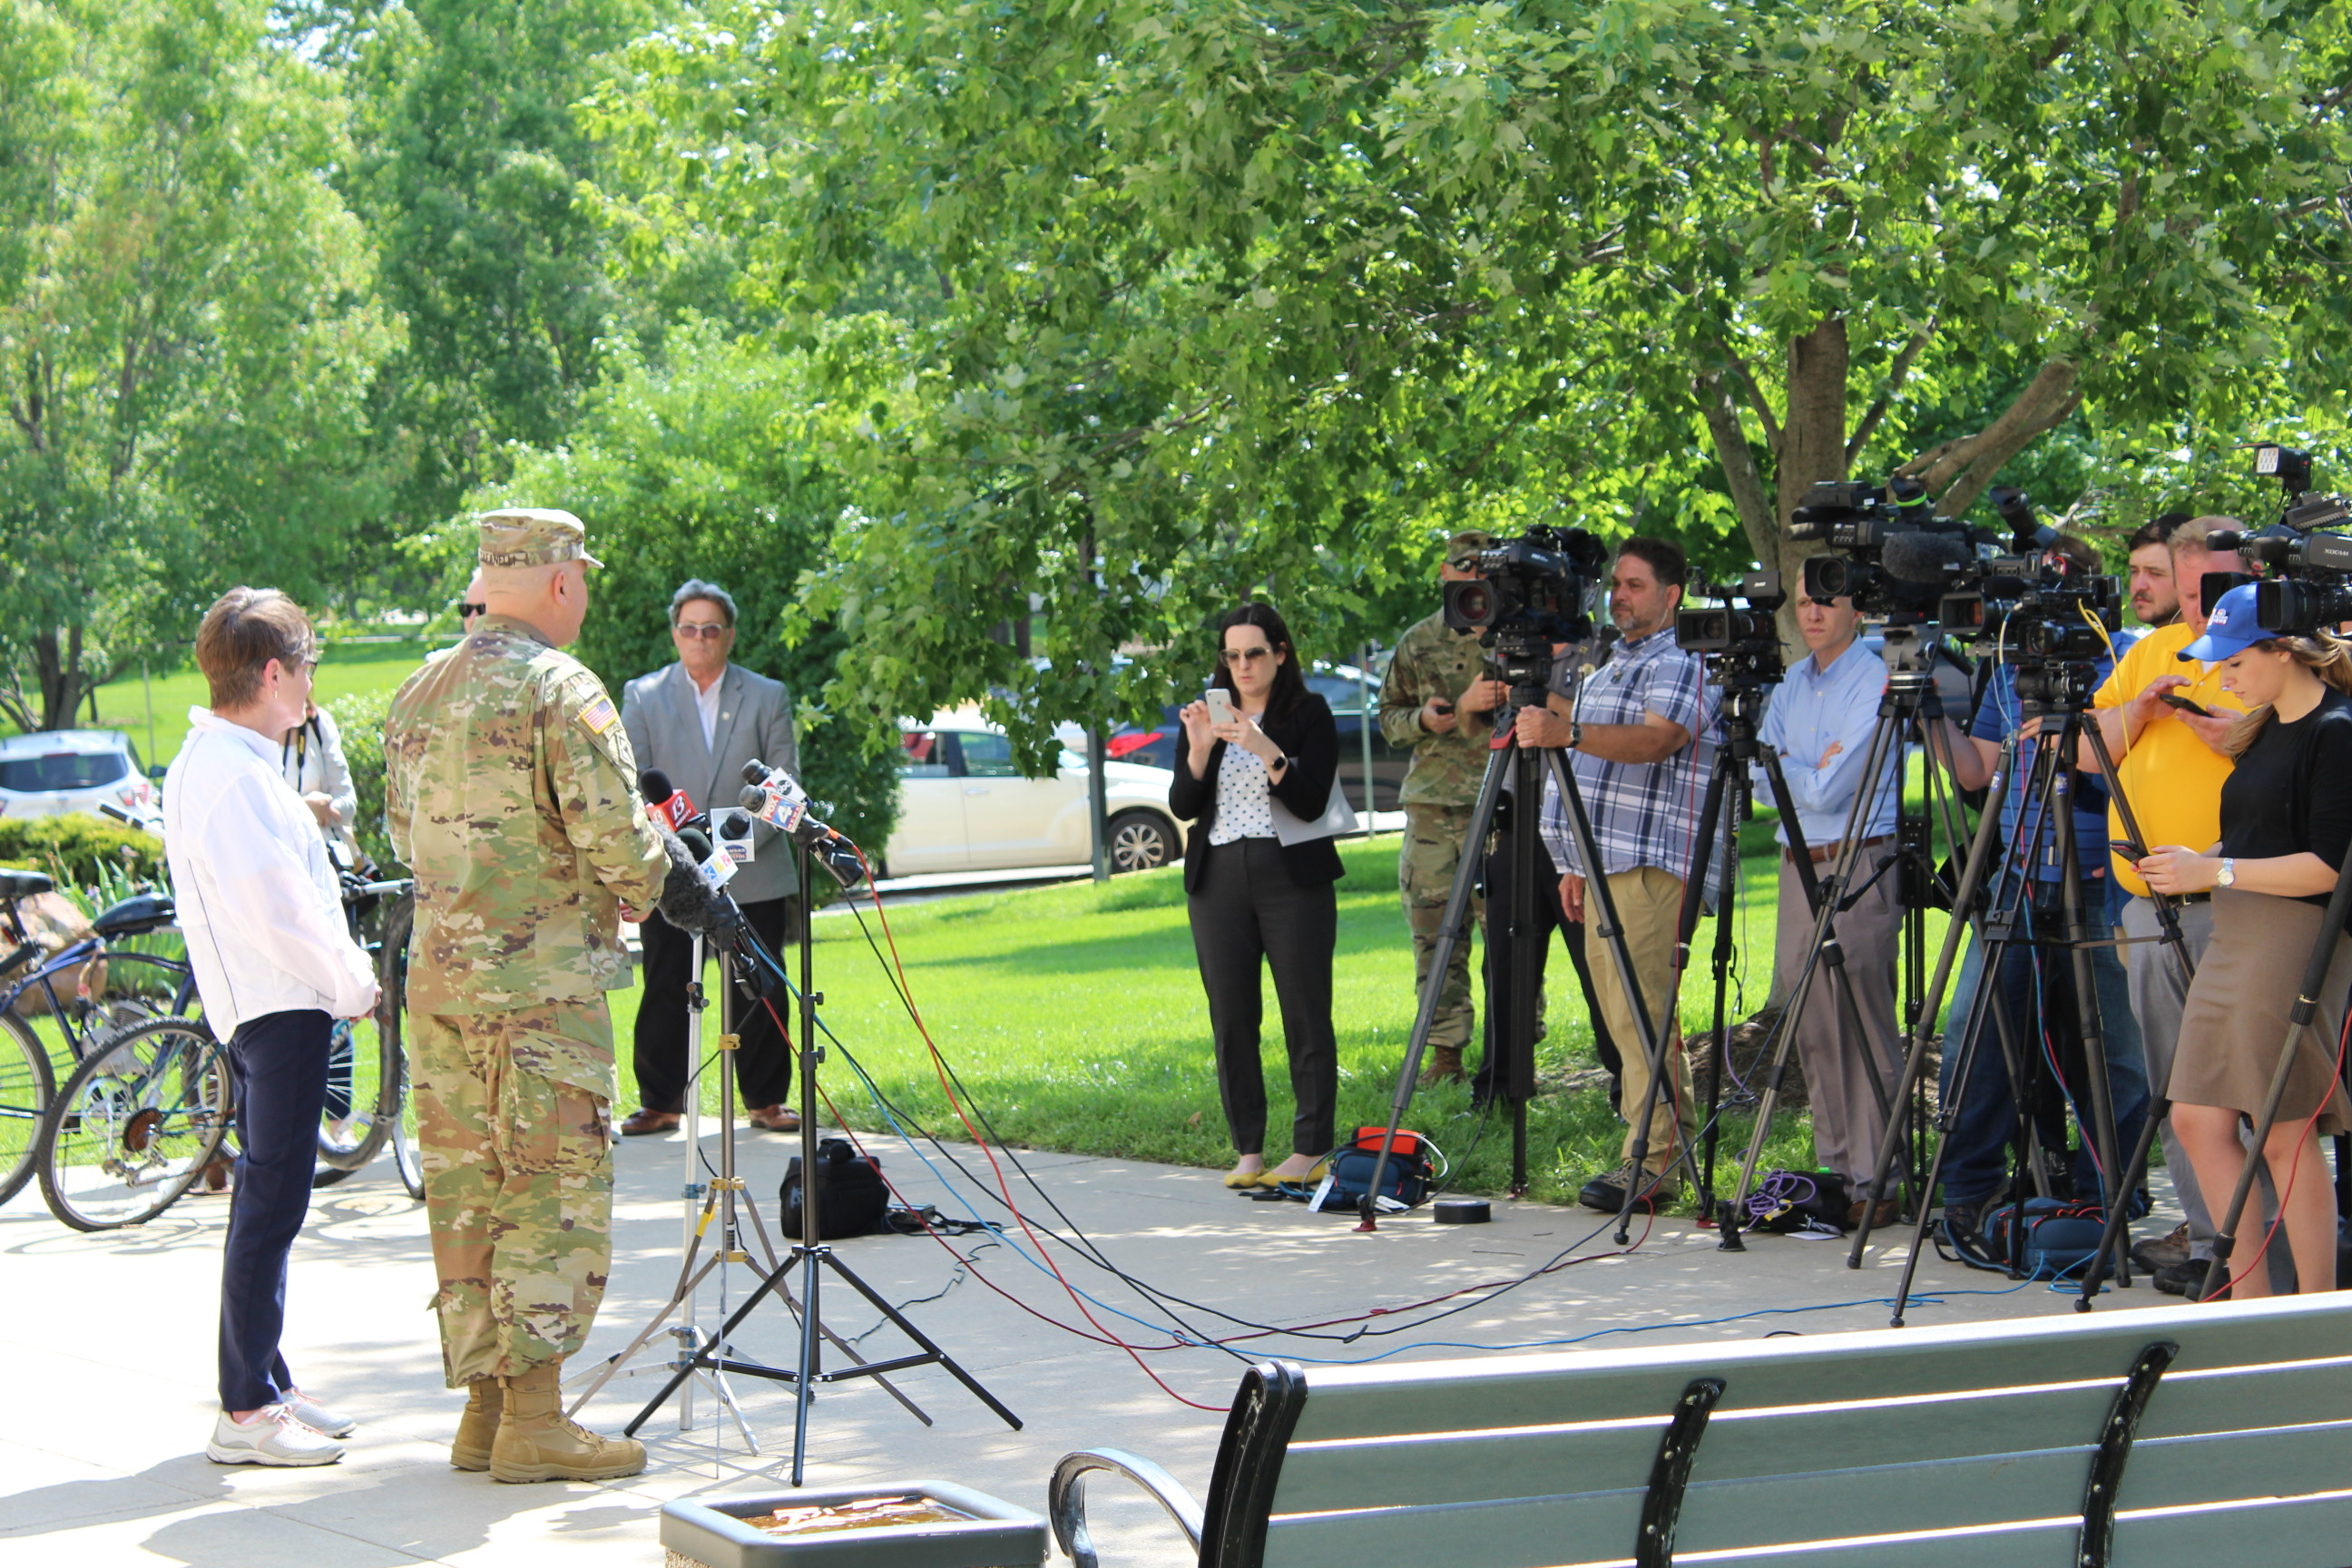 Major General Lee Tafanelli and Kansas Governor Laura Kelly, speaking at a news conference Thursday outside the Douglas County Law Enforcement Center in Lawrence. (Photo by J. Schafer)